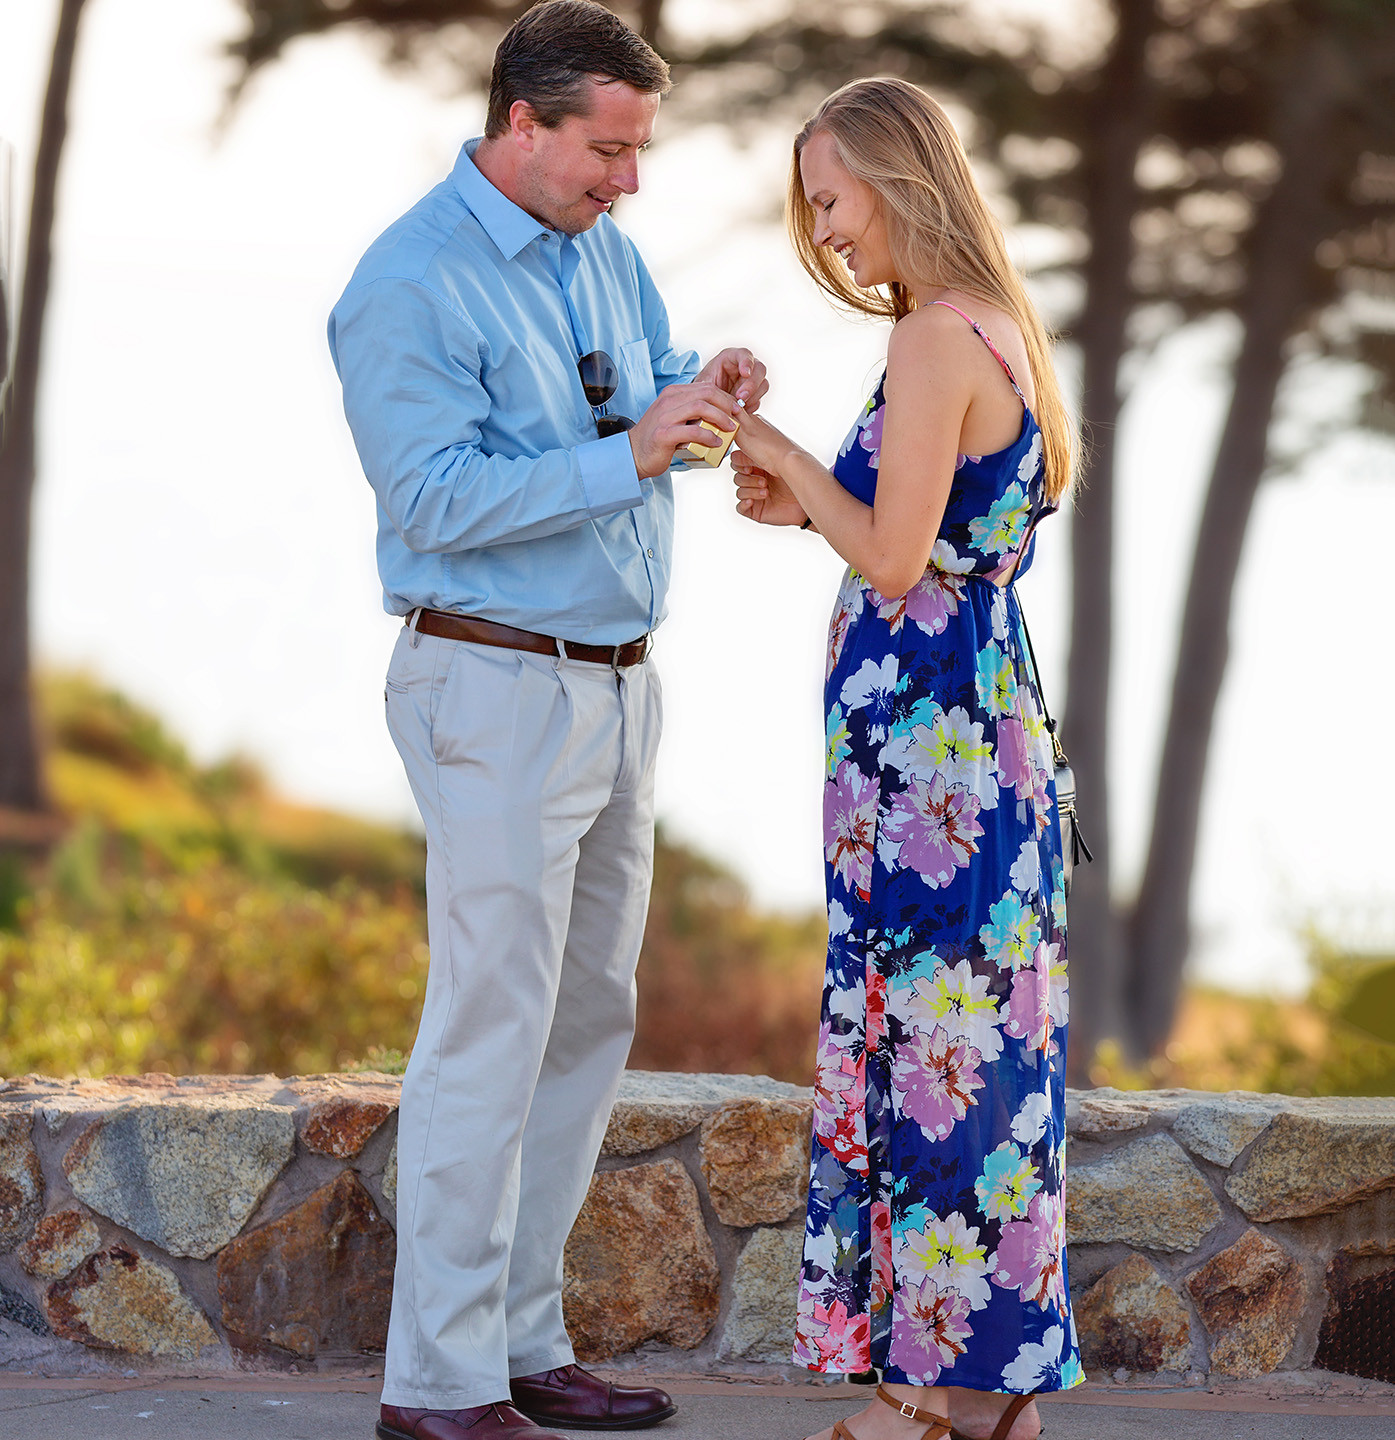 Wedding proposal Aptos CA